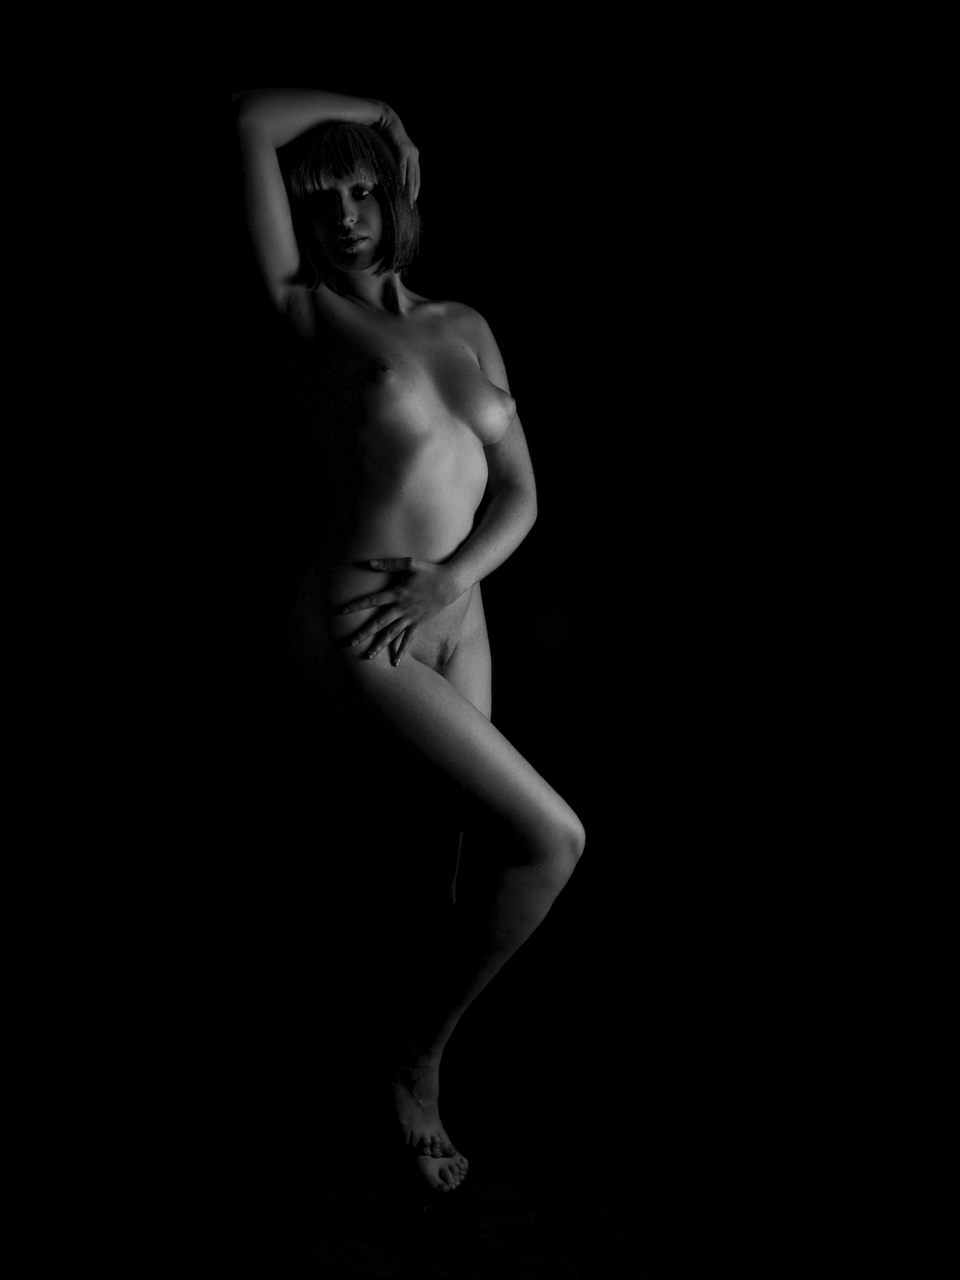 standing female figure model, hands poised